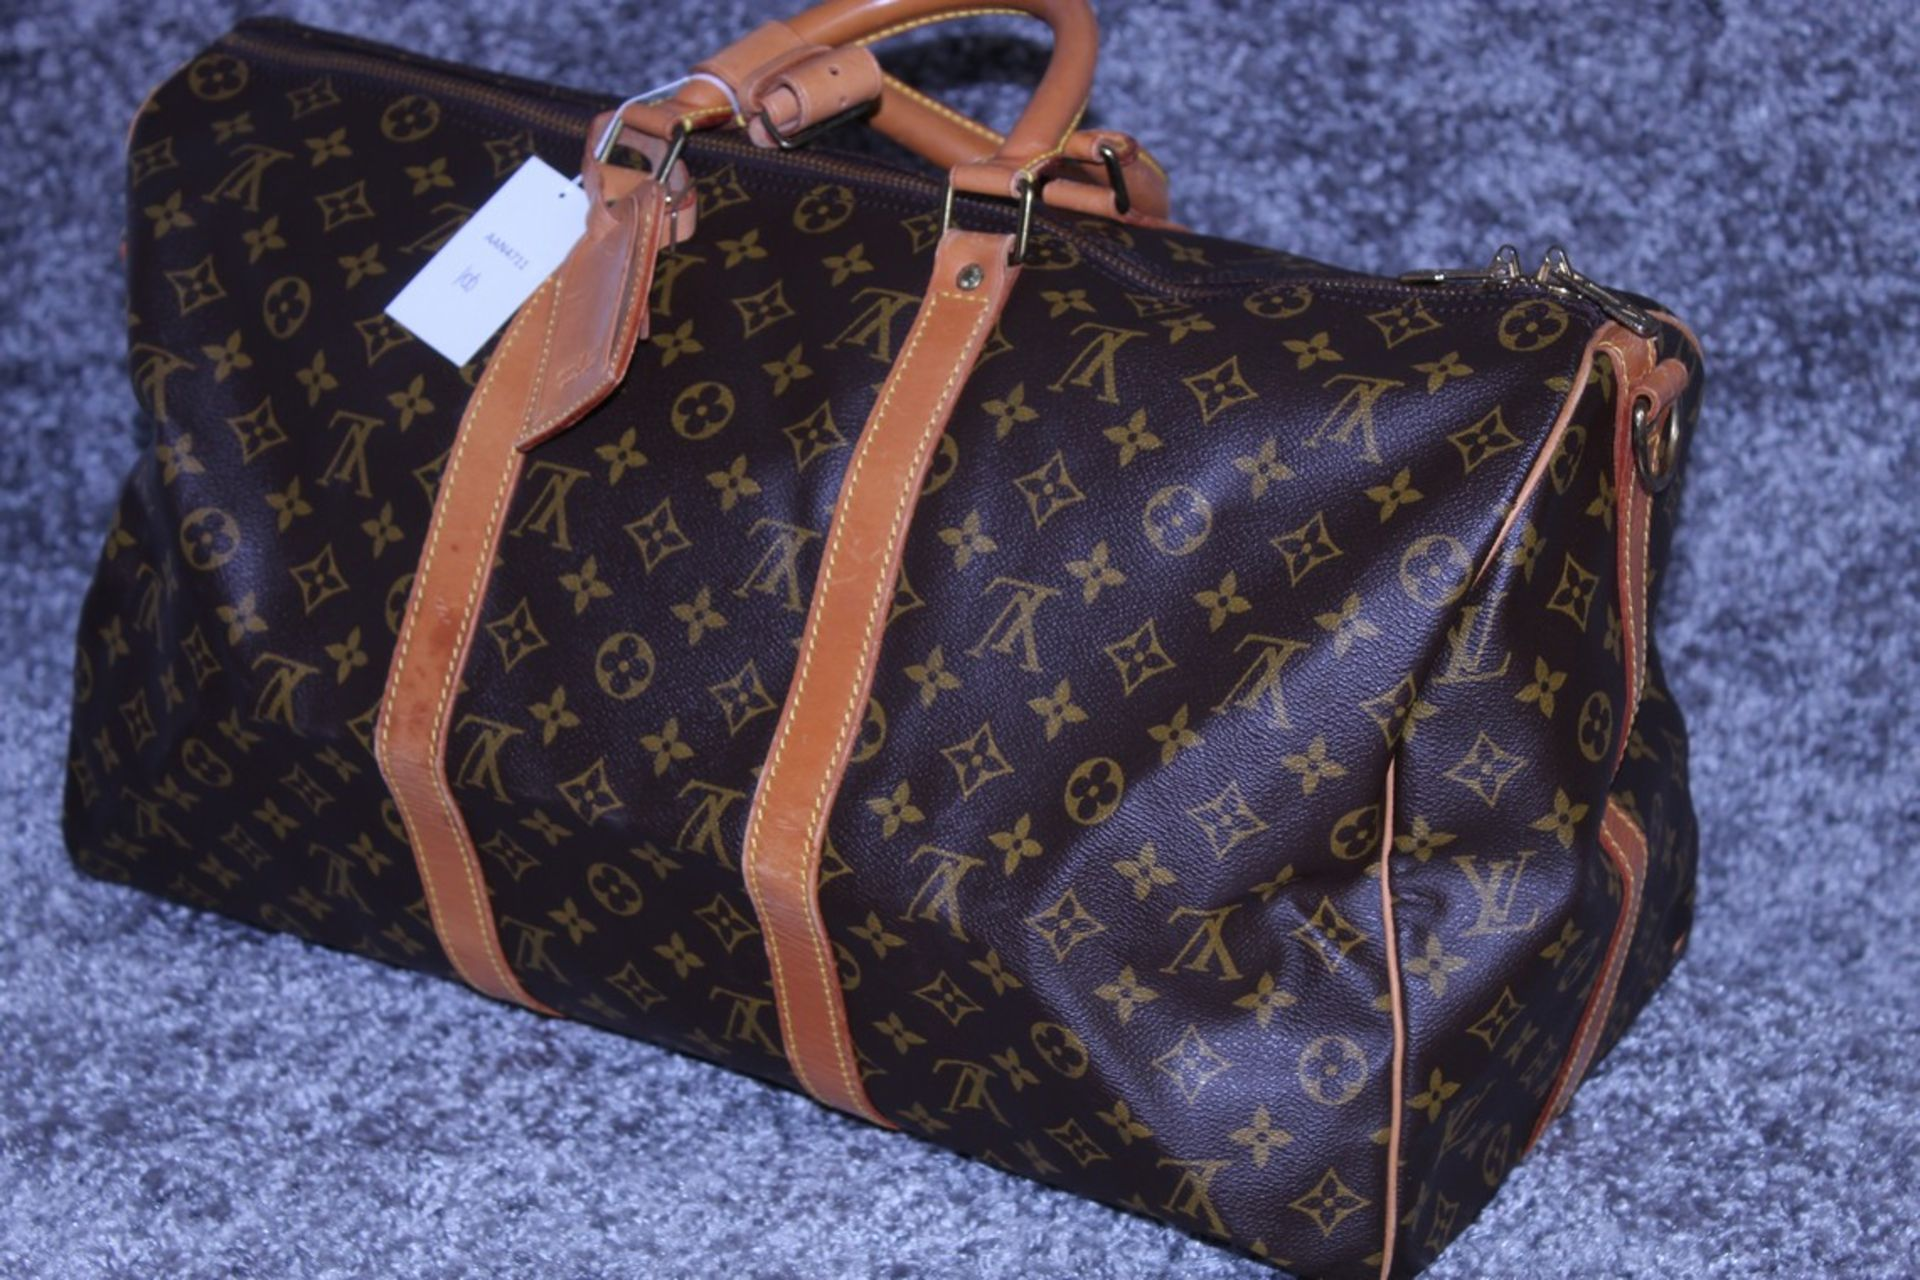 RRP 2,000 Louis Vuitton Keepall 50 Bandouliere Shoulder Bag, Brown Coated Canvas Monogram, - Image 3 of 3